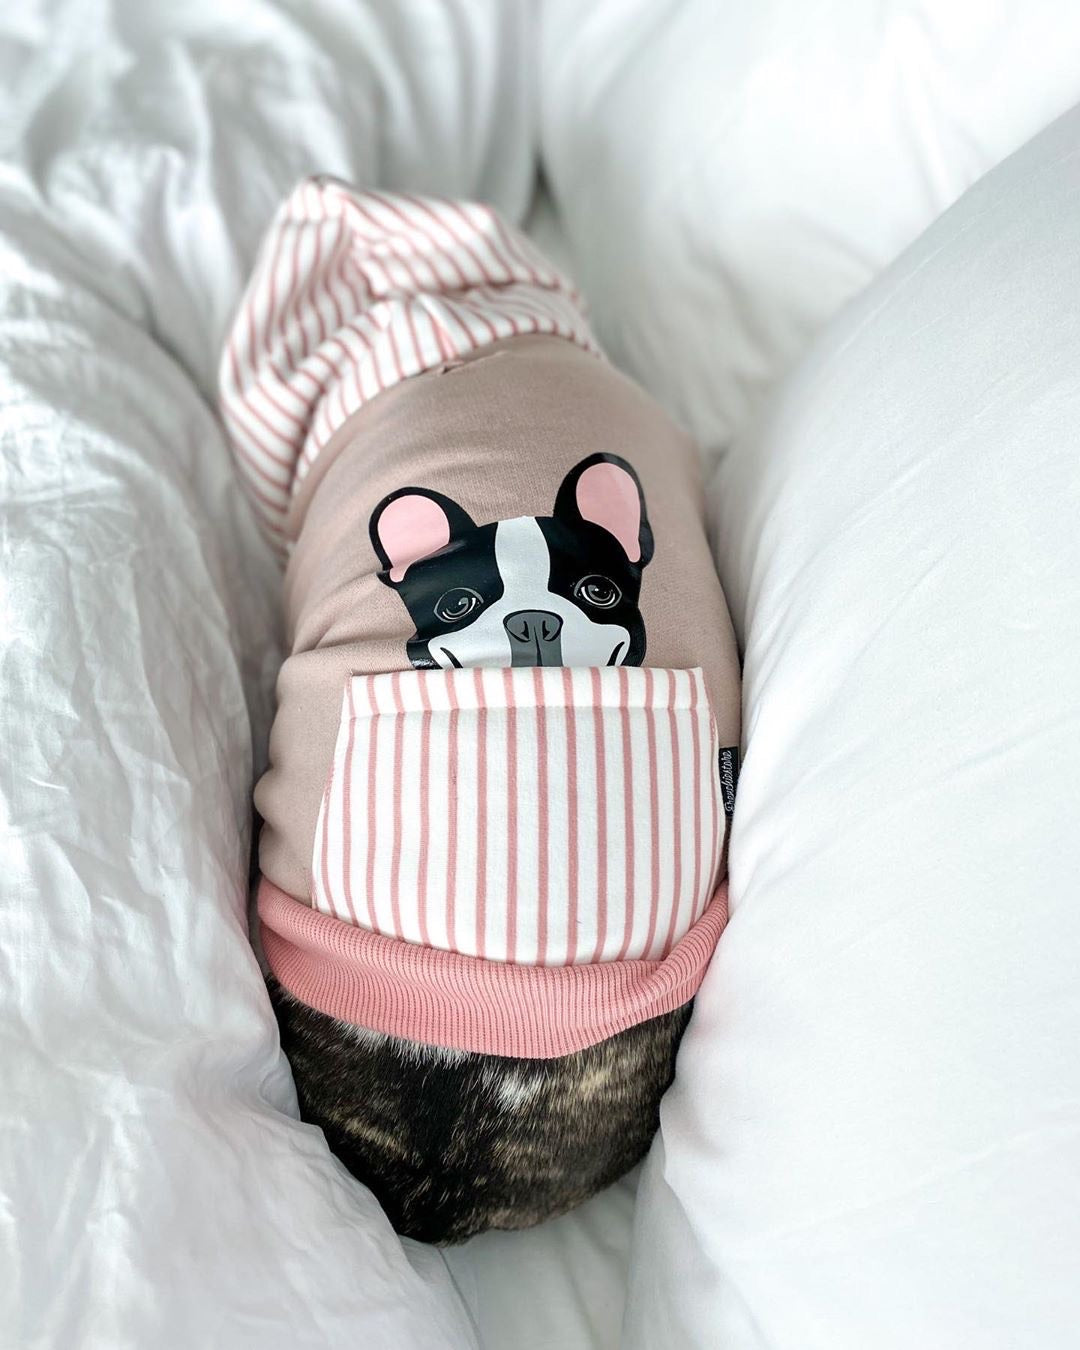 French Bulldog hoodie in pink | Frenchie Clothing | Black Pied Frenchie dog, Frenchie Dog, French Bulldog pet products